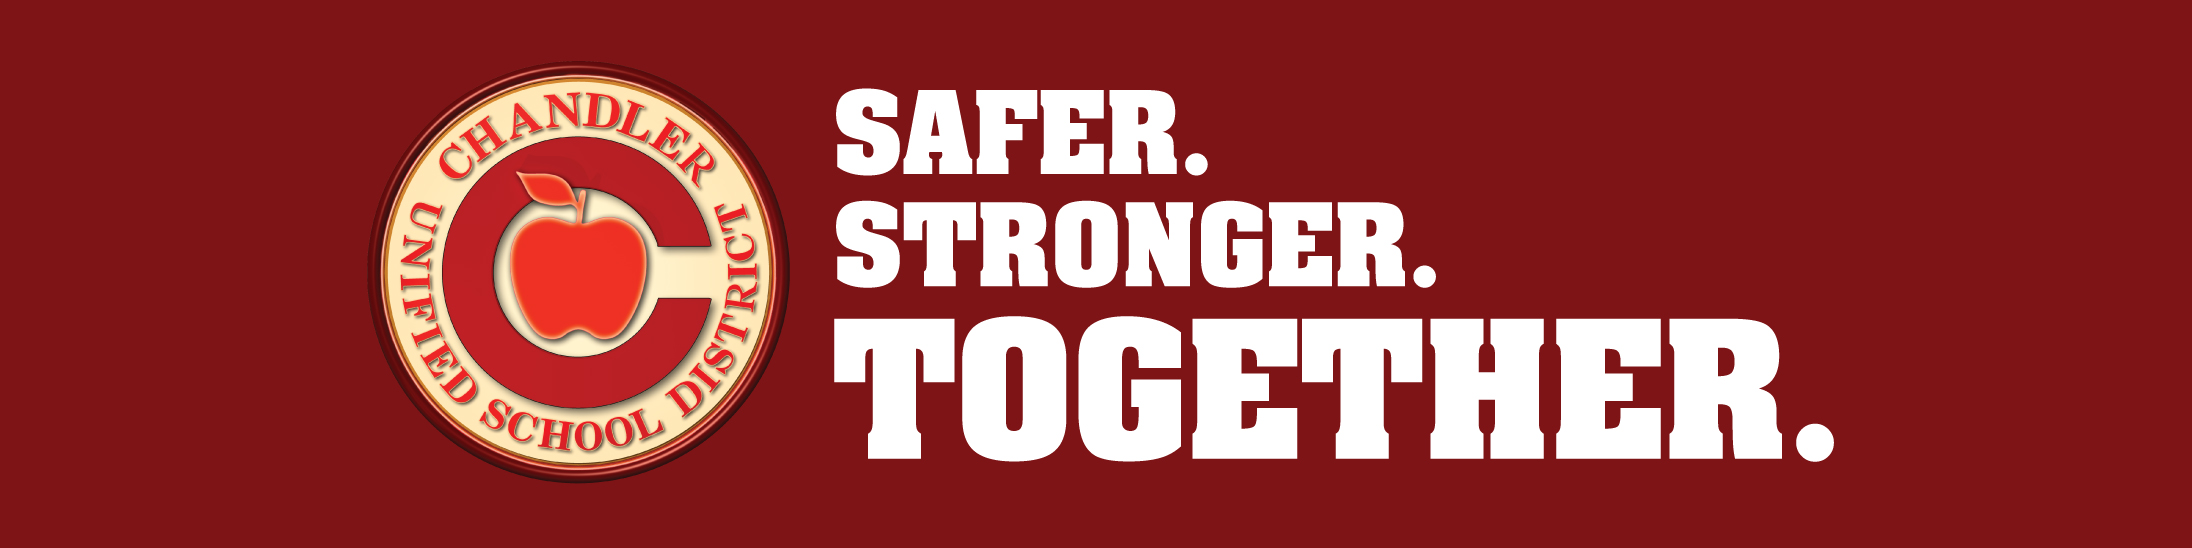 Safer. Stronger. Together